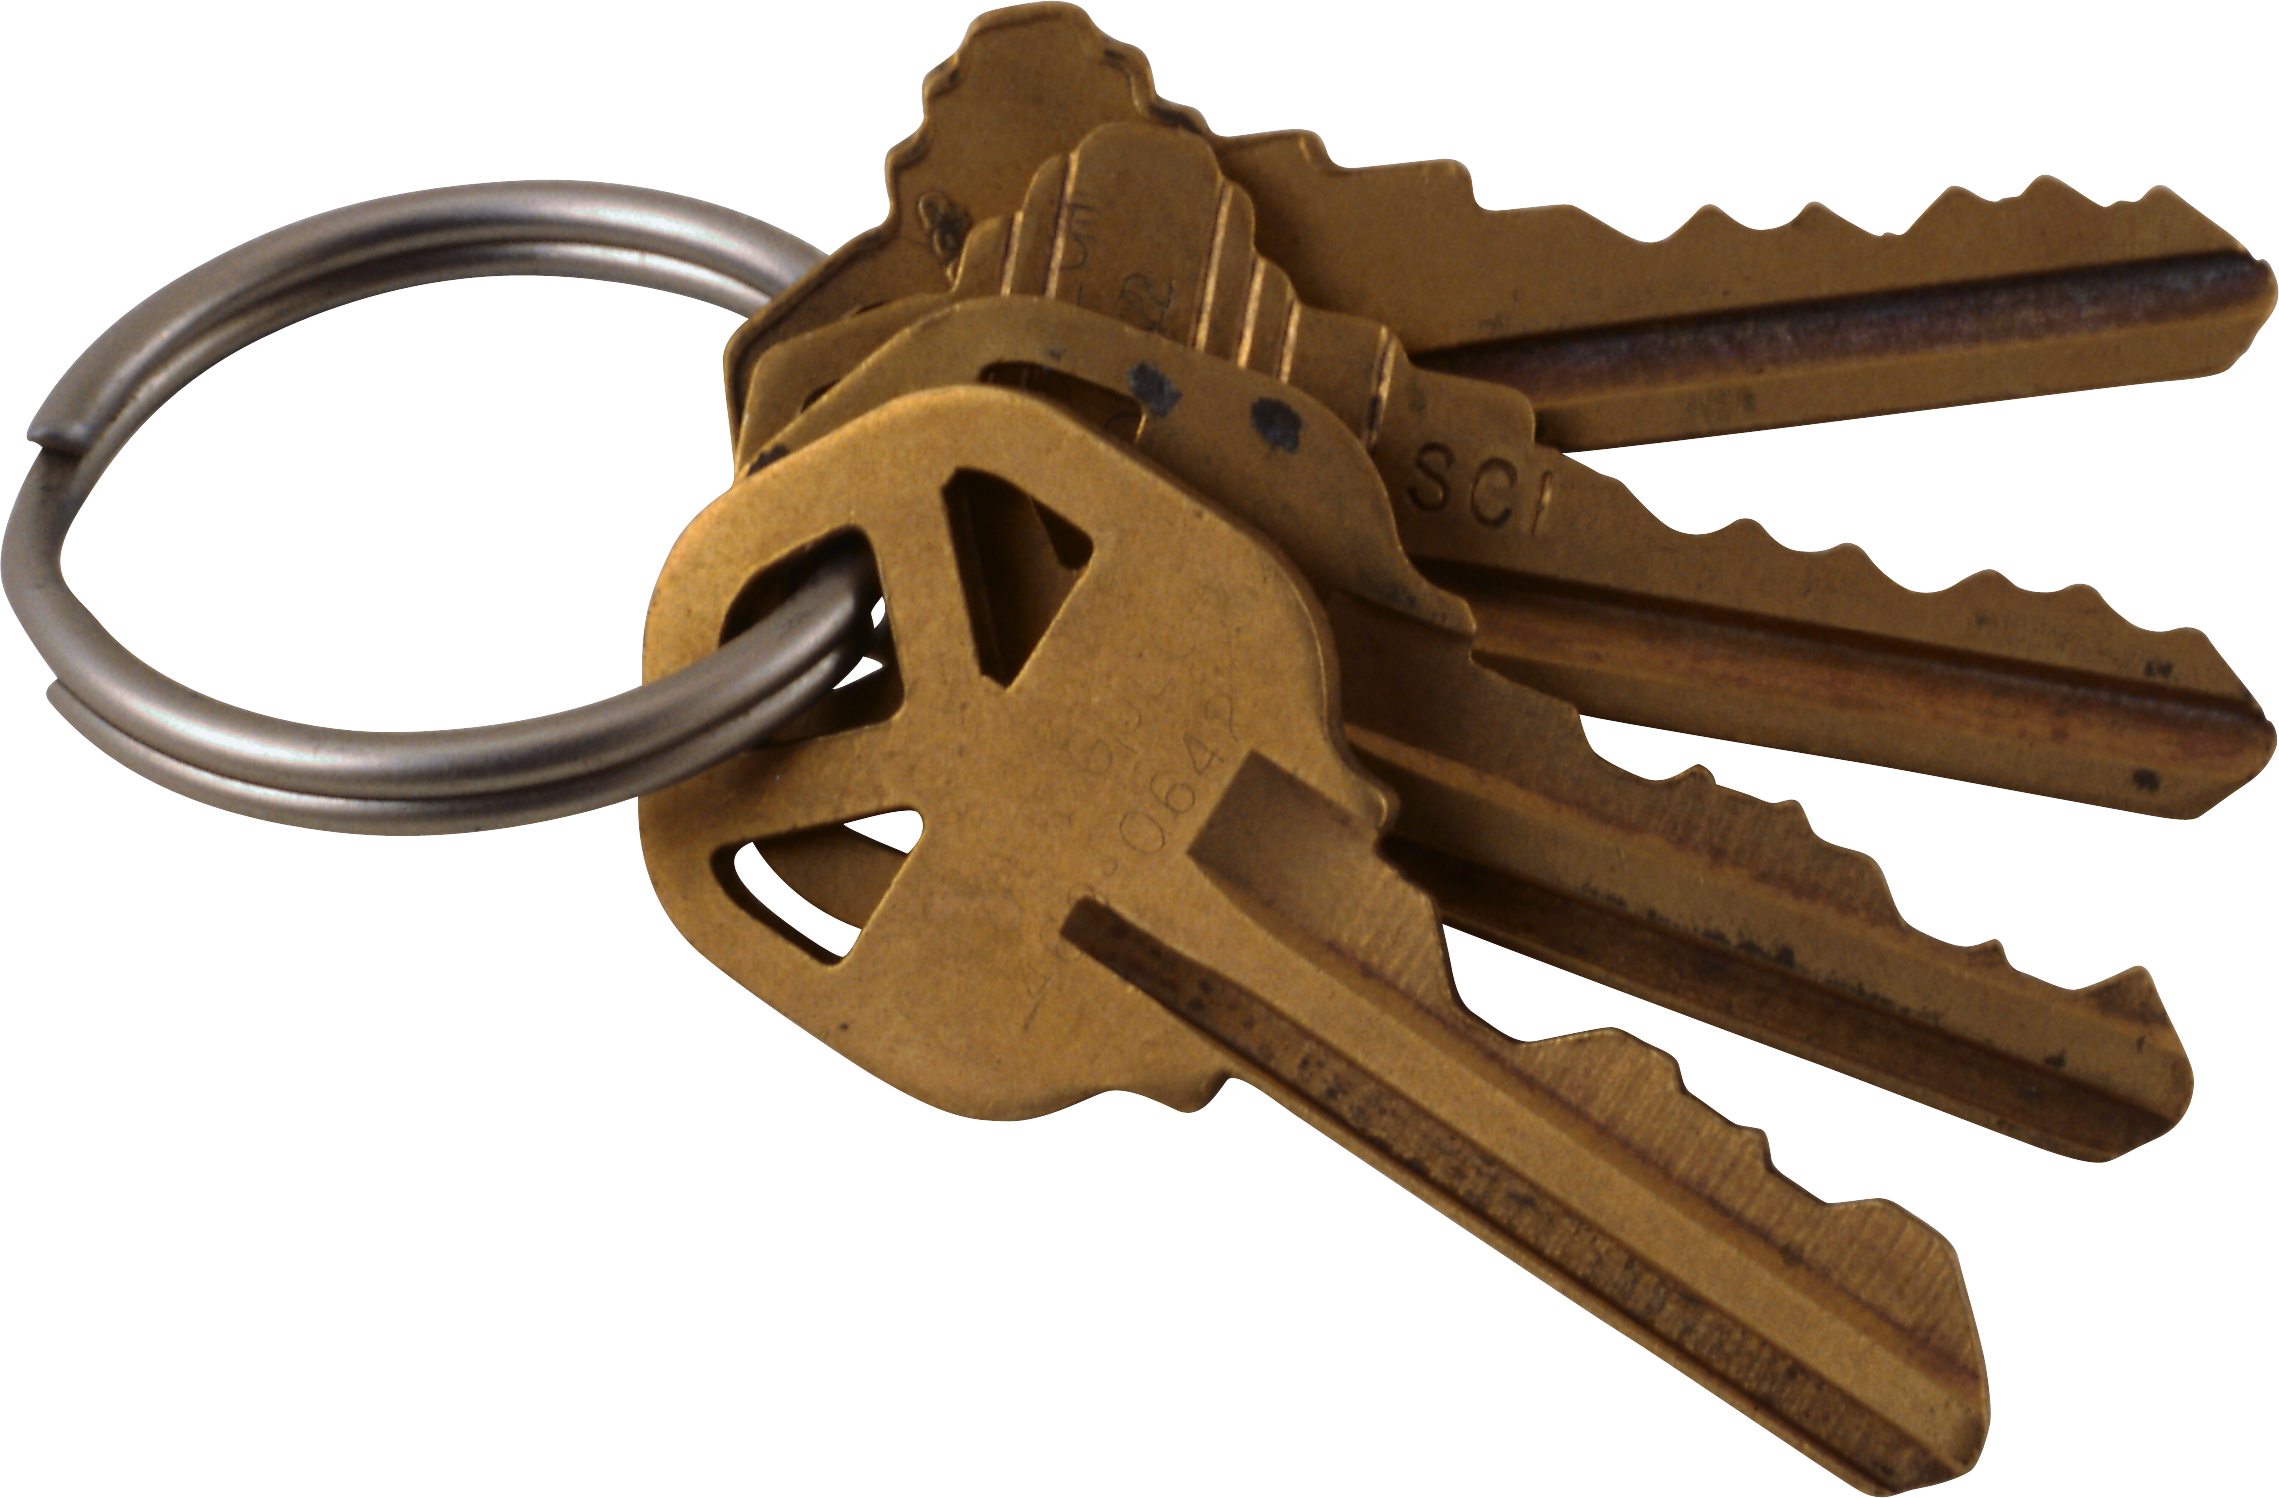 Clipart house keys jpg free library Key's PNG Image - PurePNG | Free transparent CC0 PNG Image Library jpg free library